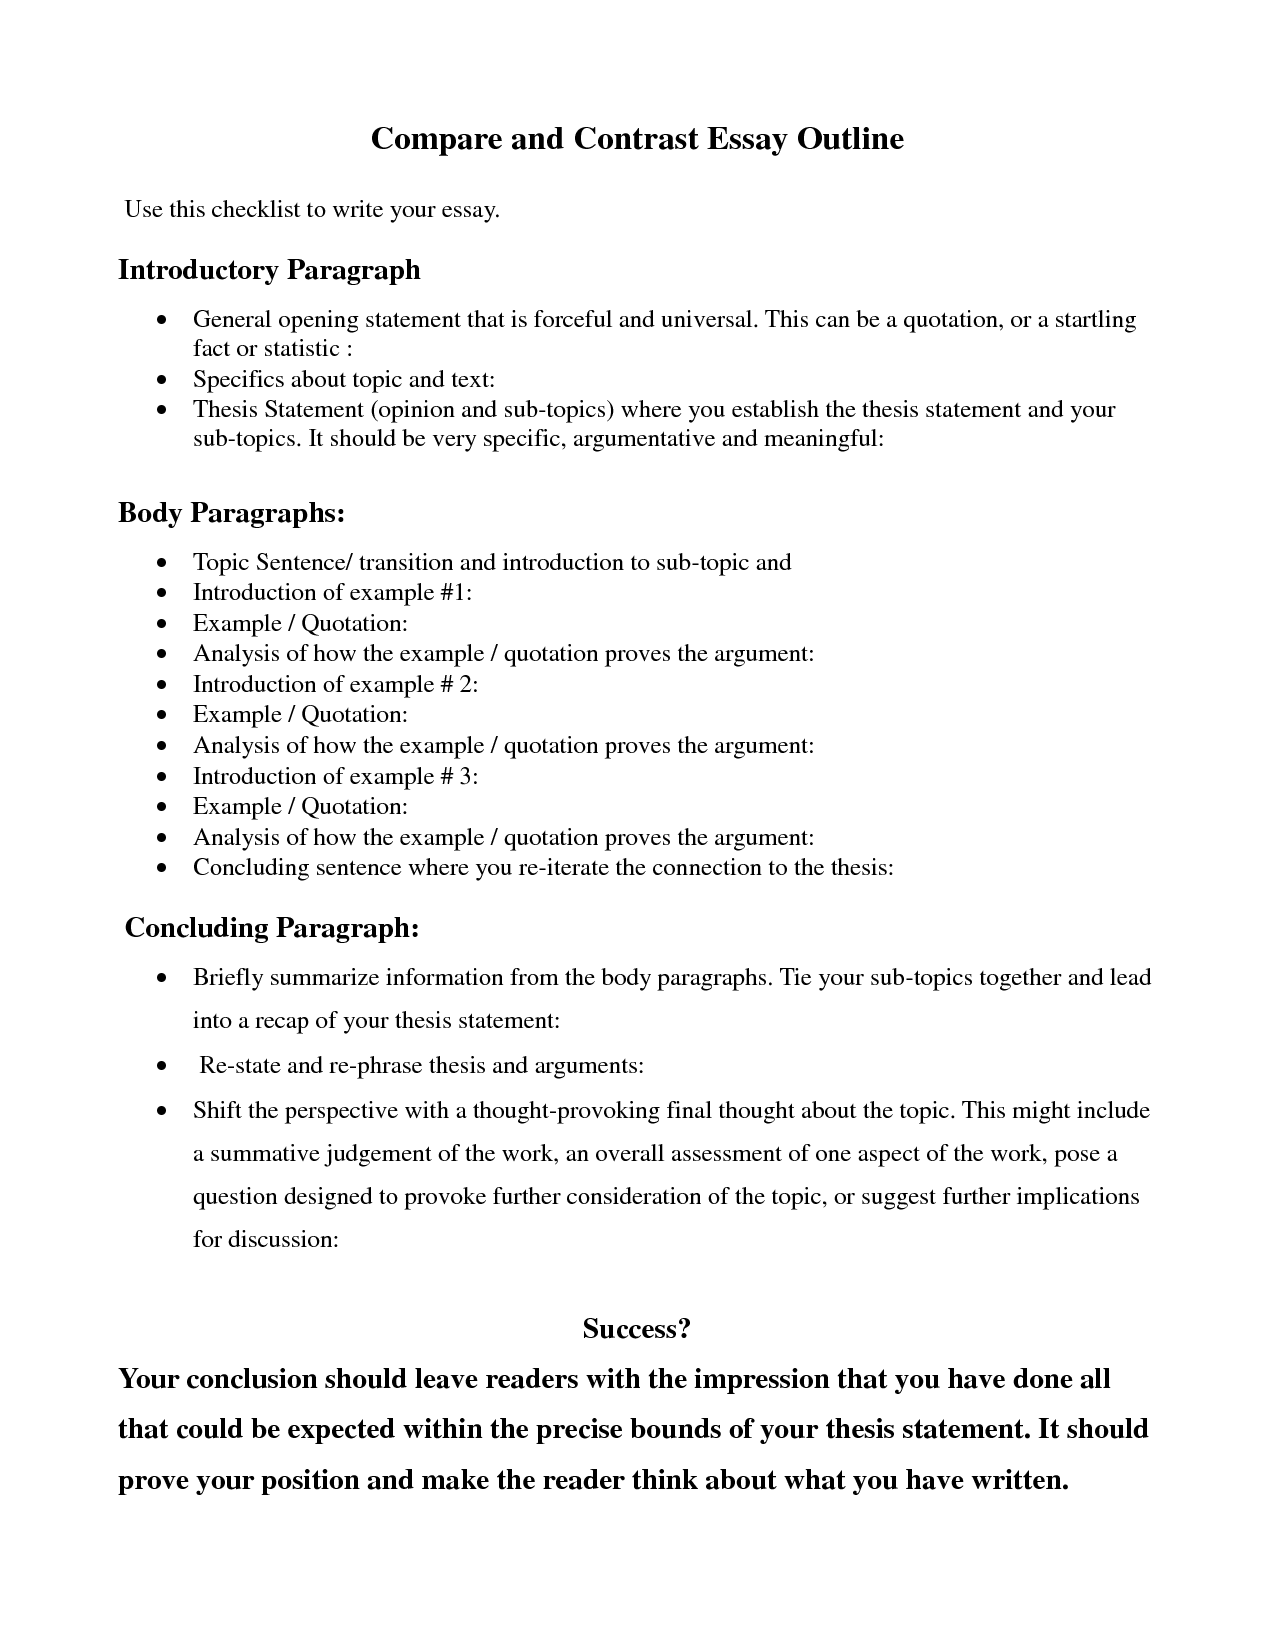 001 Compare And Contrast Essay Example Frightening Topics Outline Doc Sample 4th Grade Full